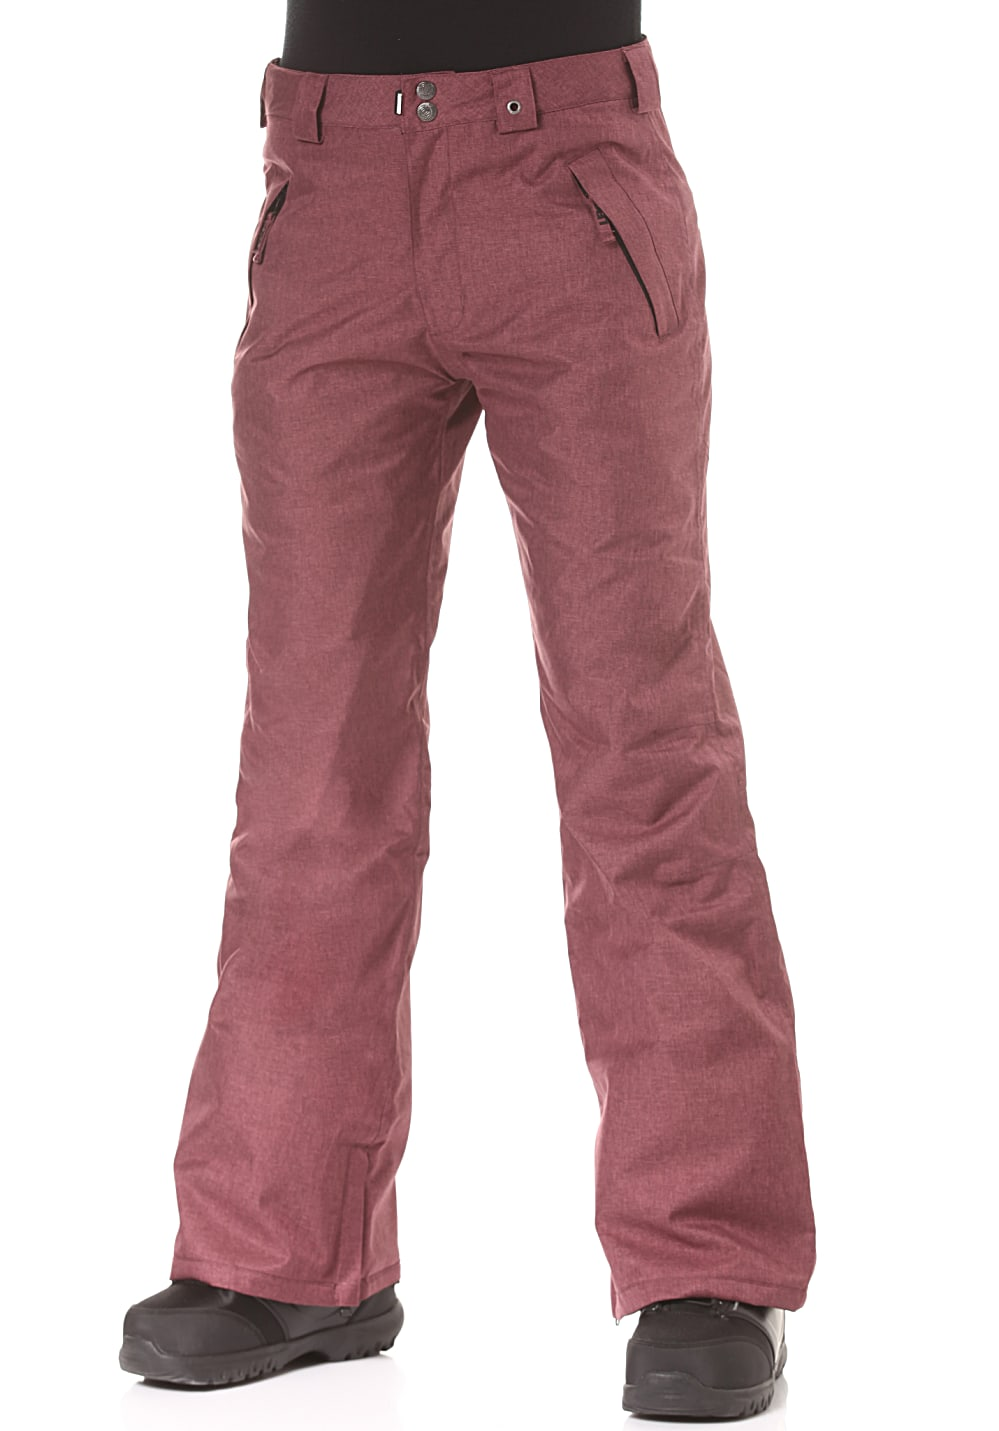 Hosen - Light Yoko Snowboardhose für Damen Rot  - Onlineshop Planet Sports